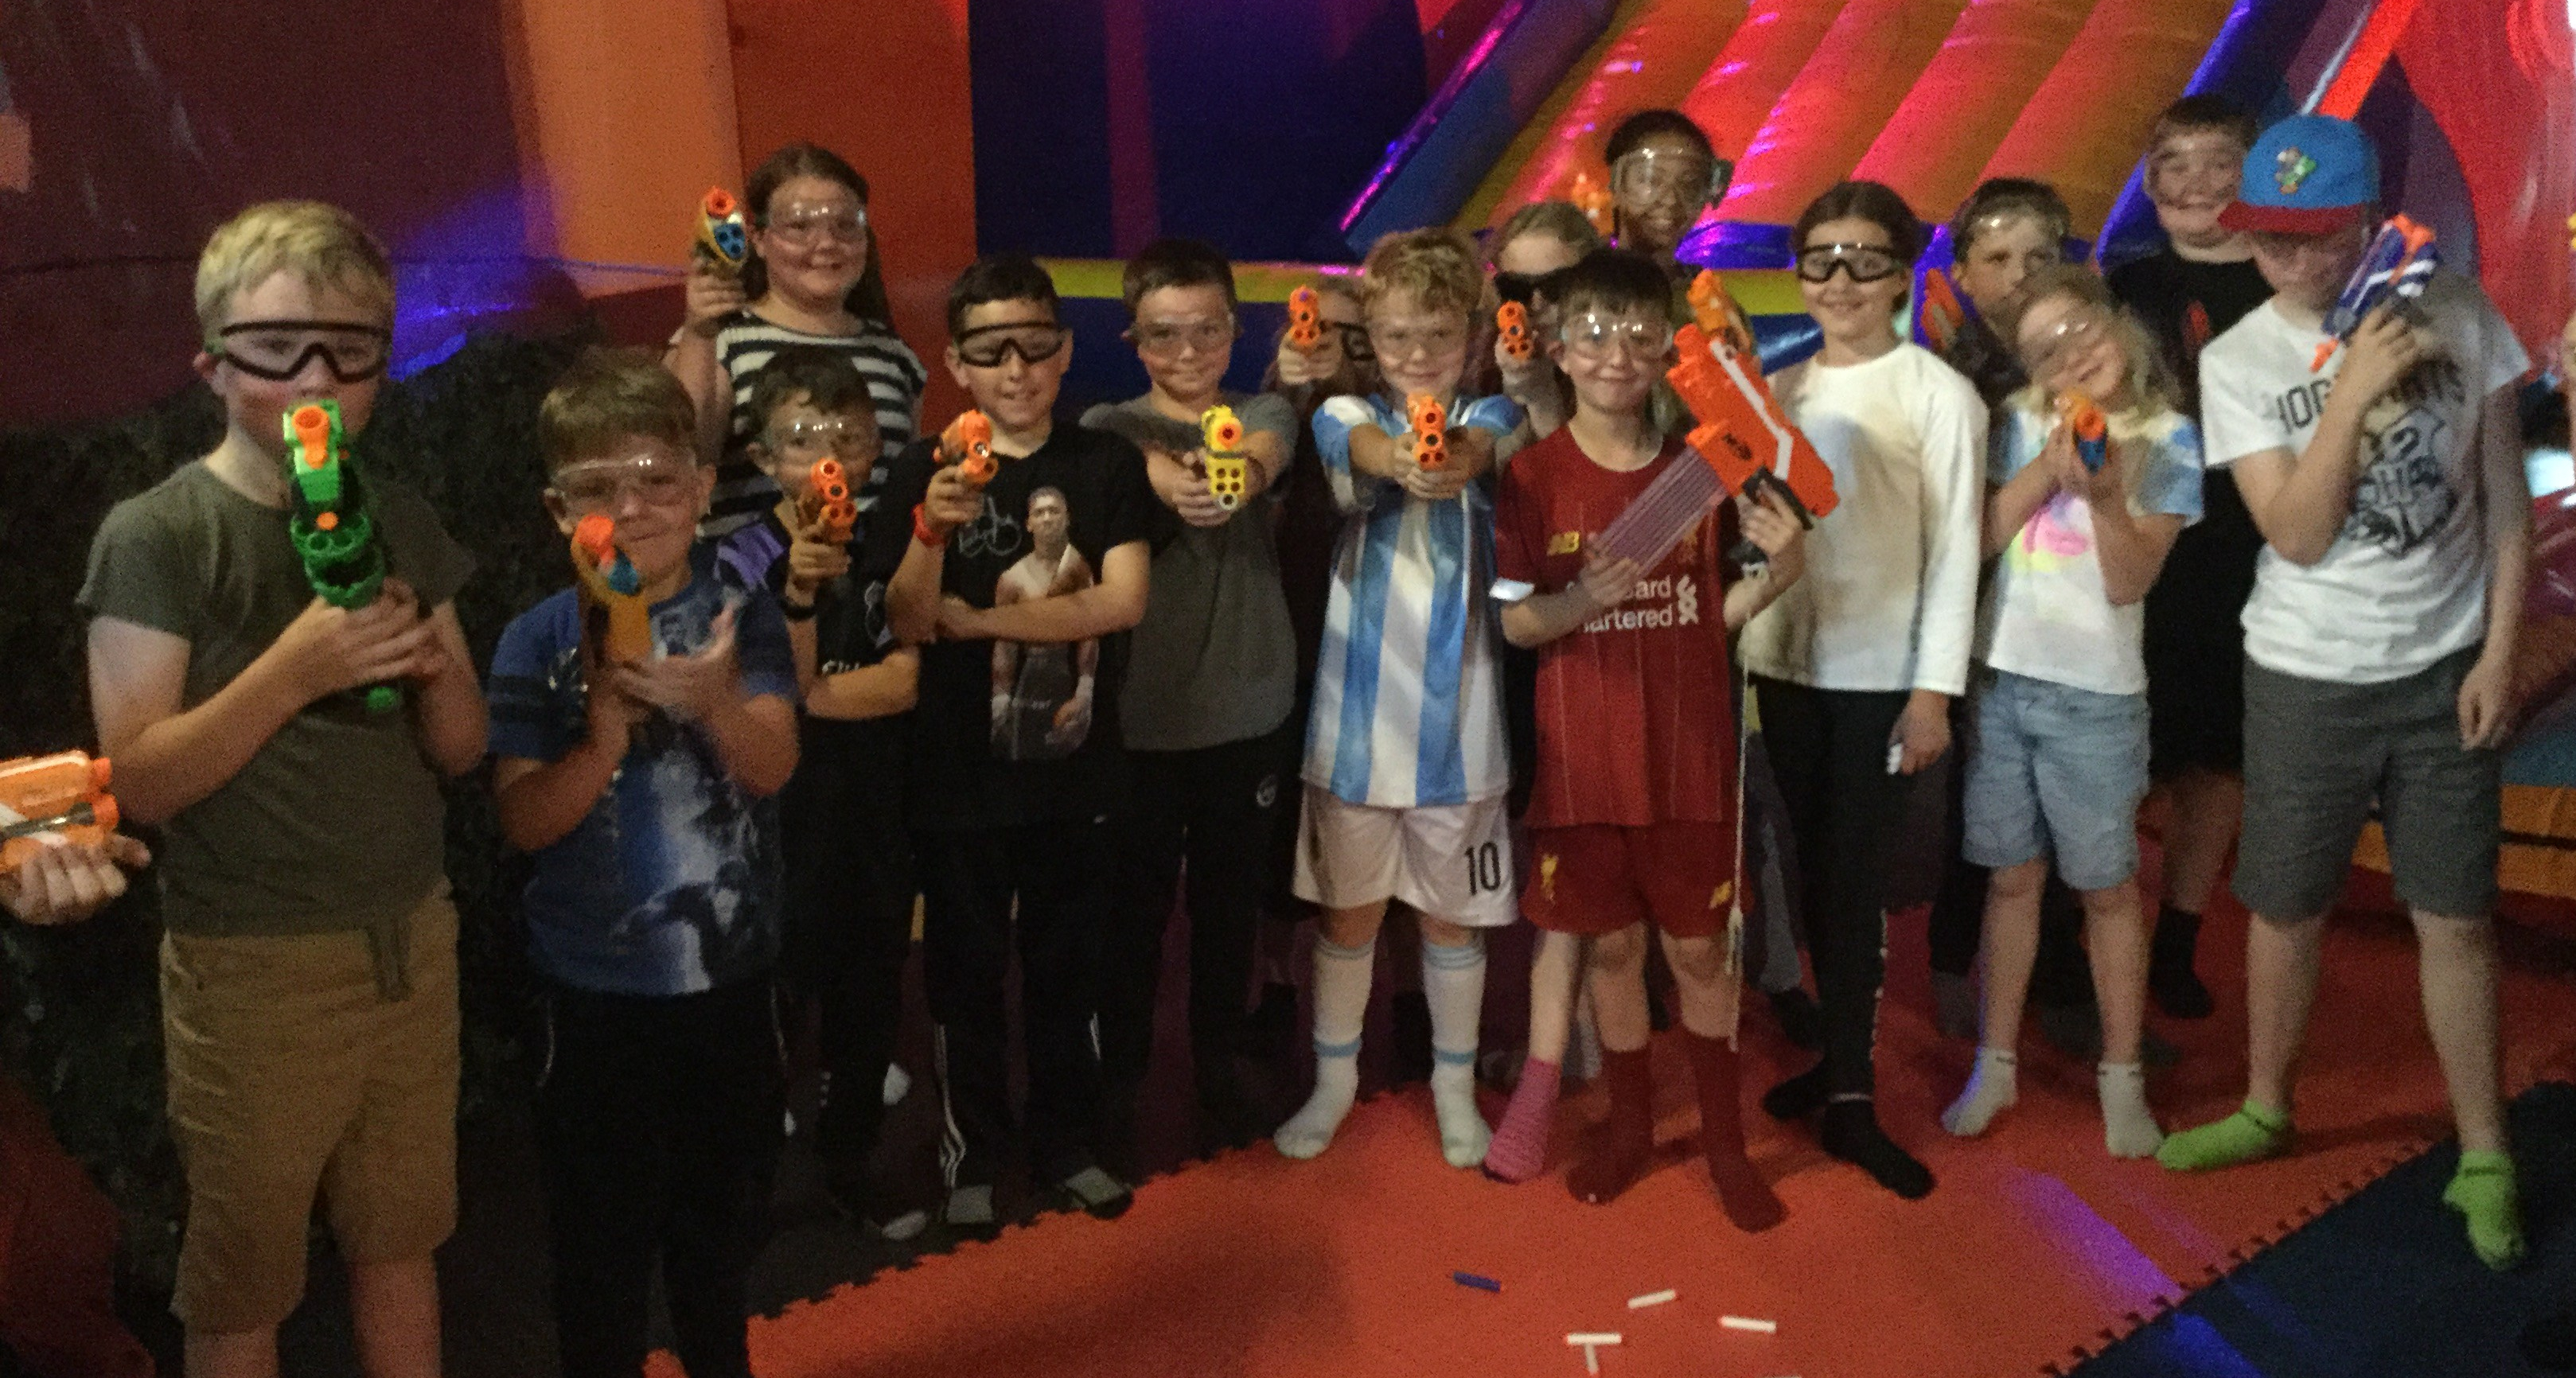 Quality fun and games for youngsters during half-term